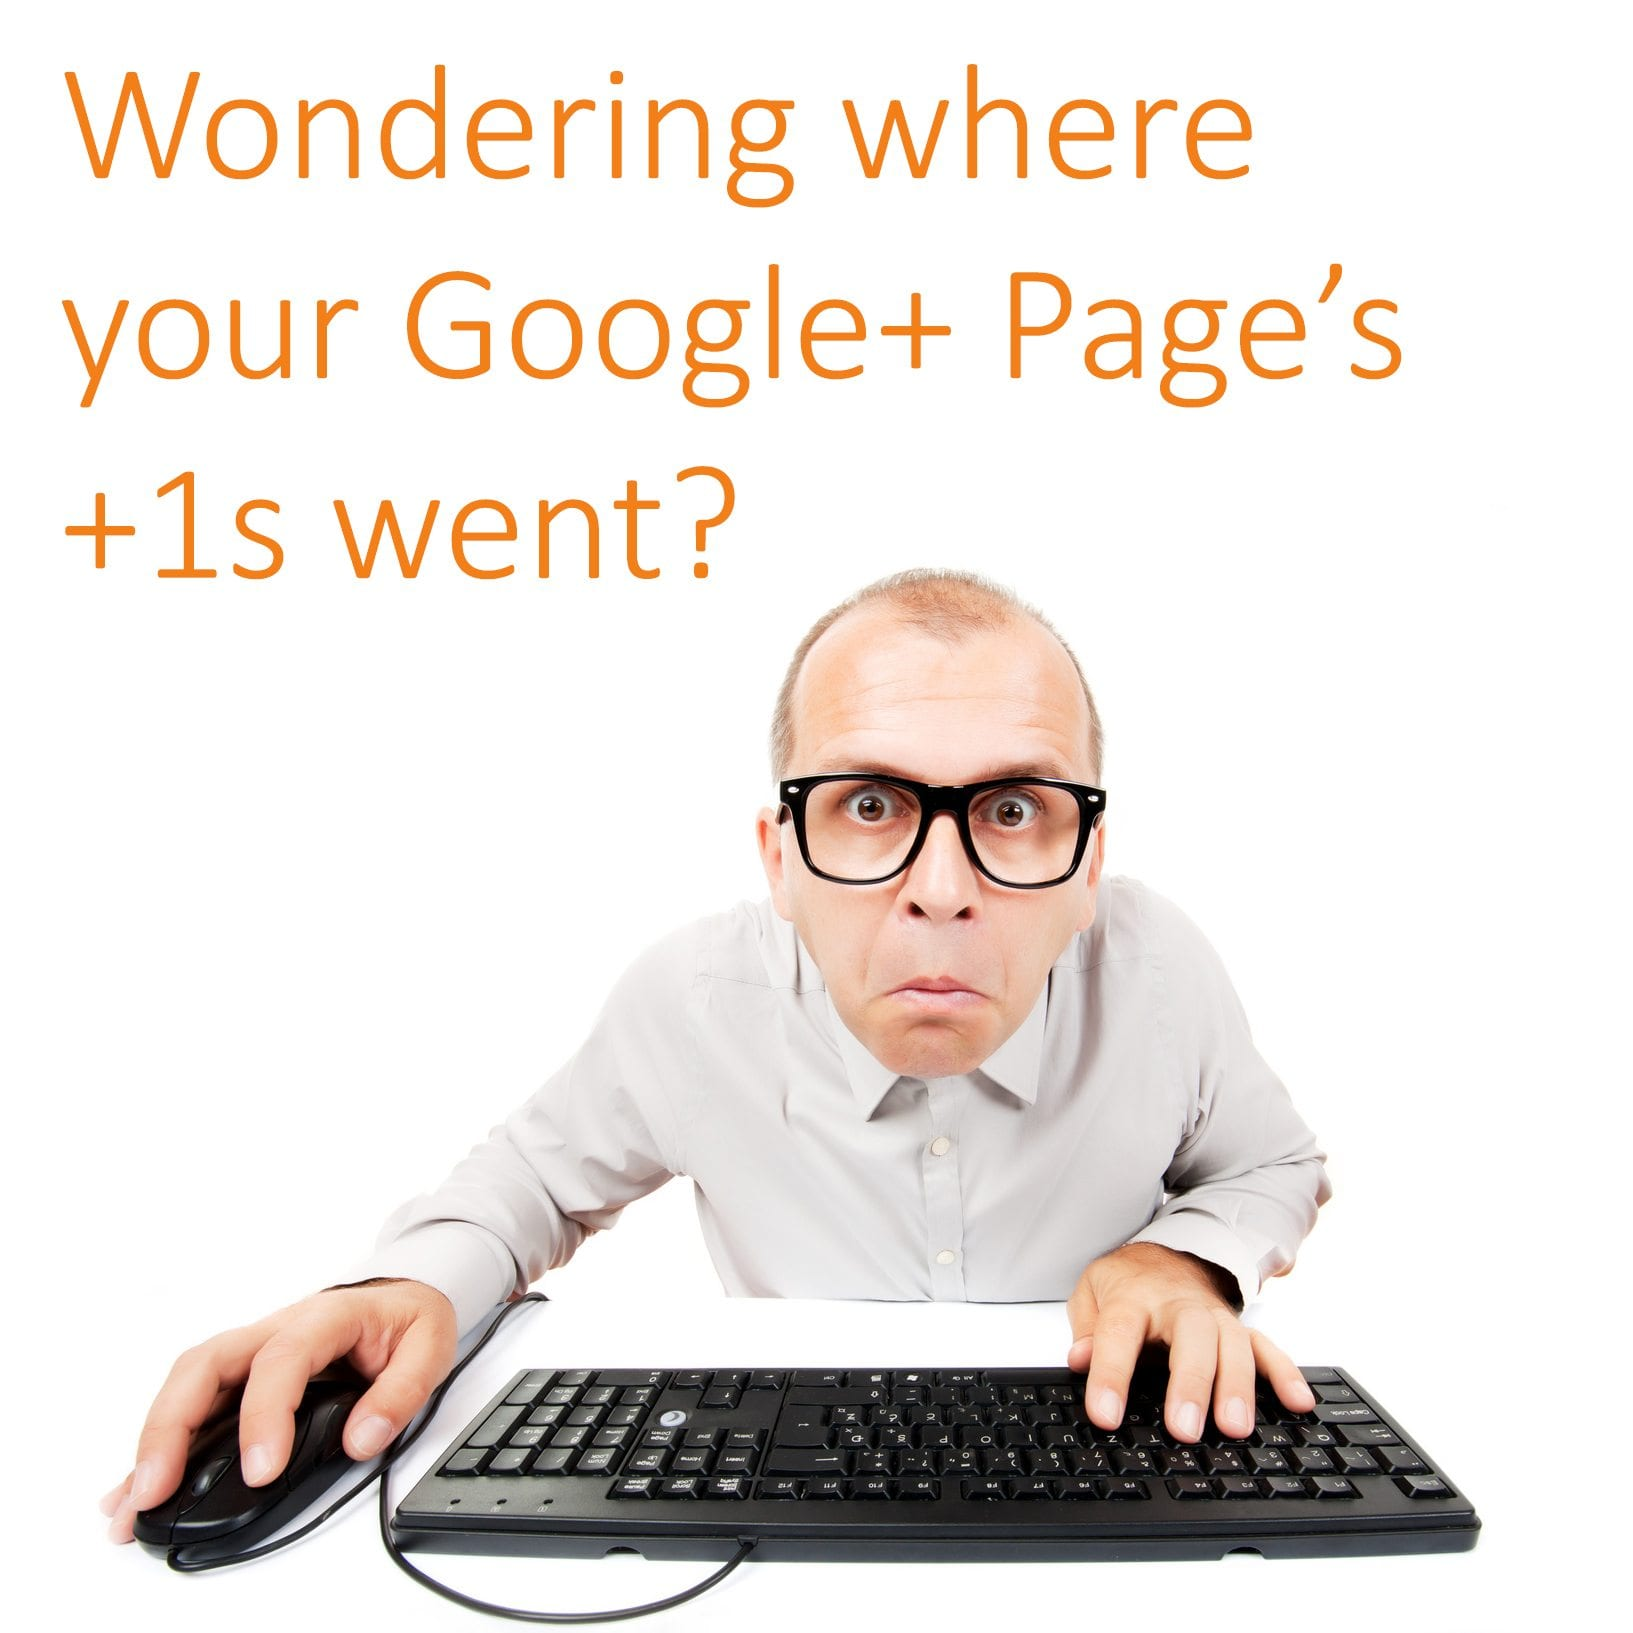 Wondering where your Google+ Page's +1s Went?